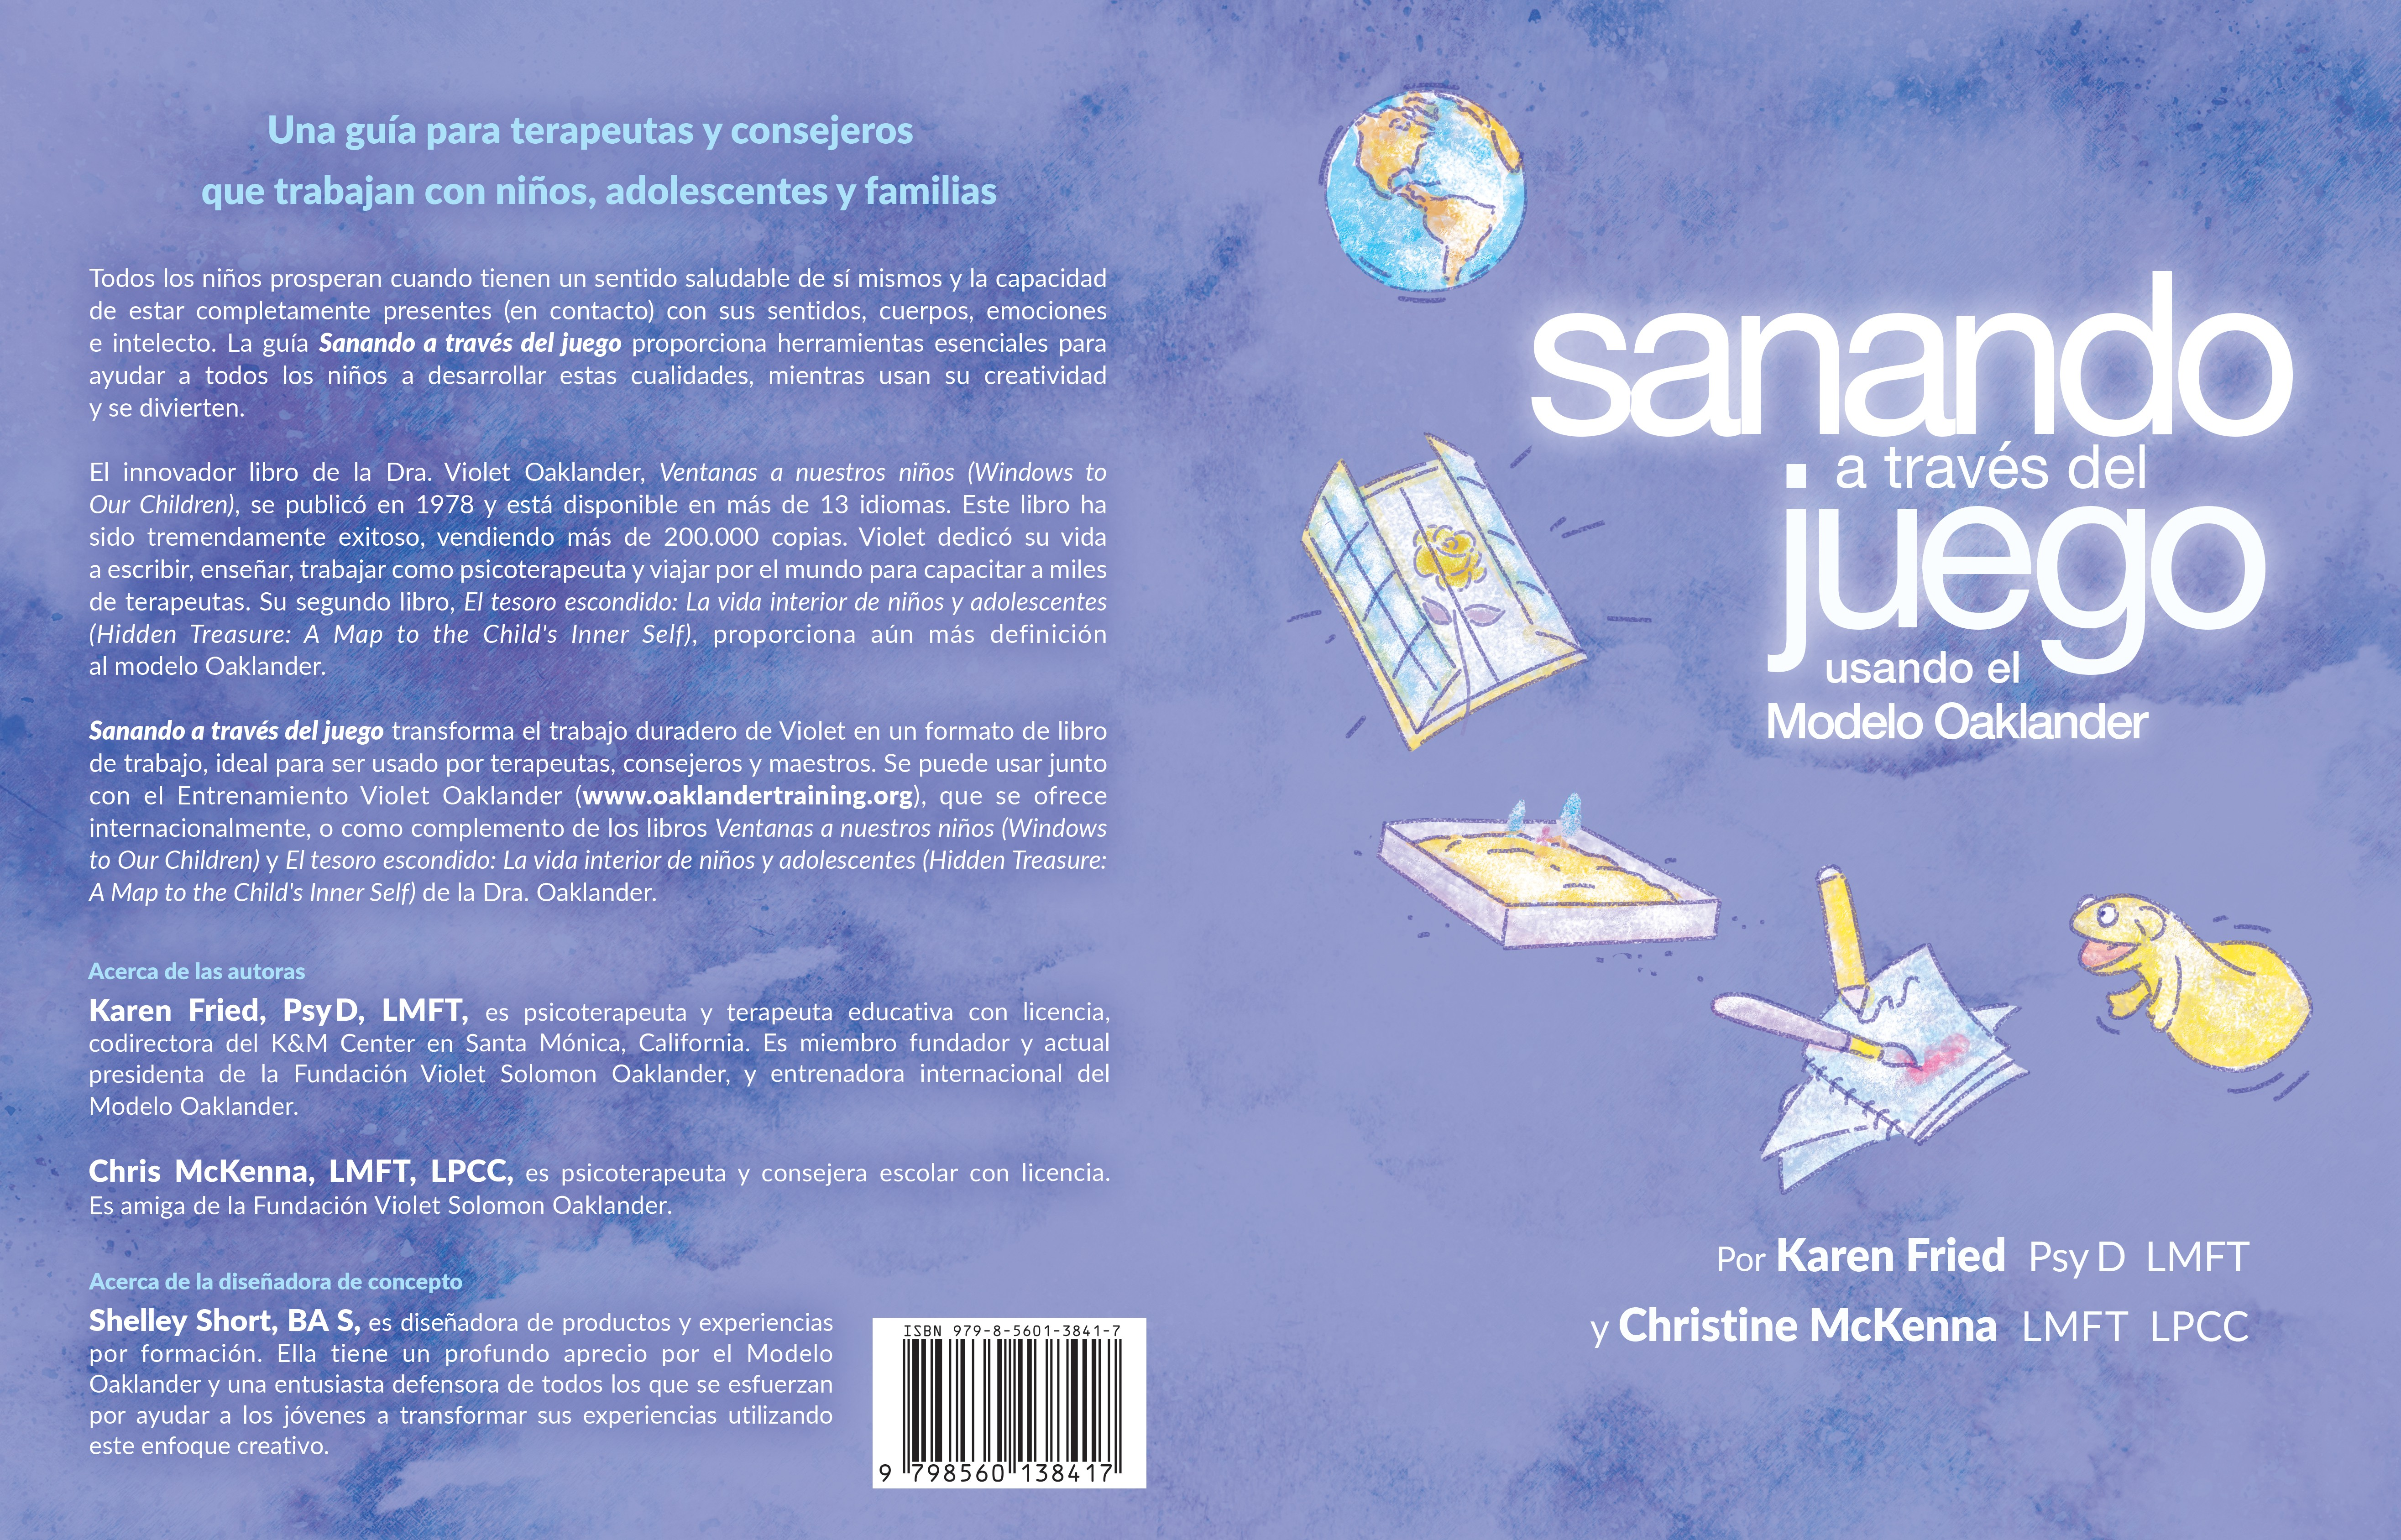 book cover for a workbook on child therapy - Spanish version